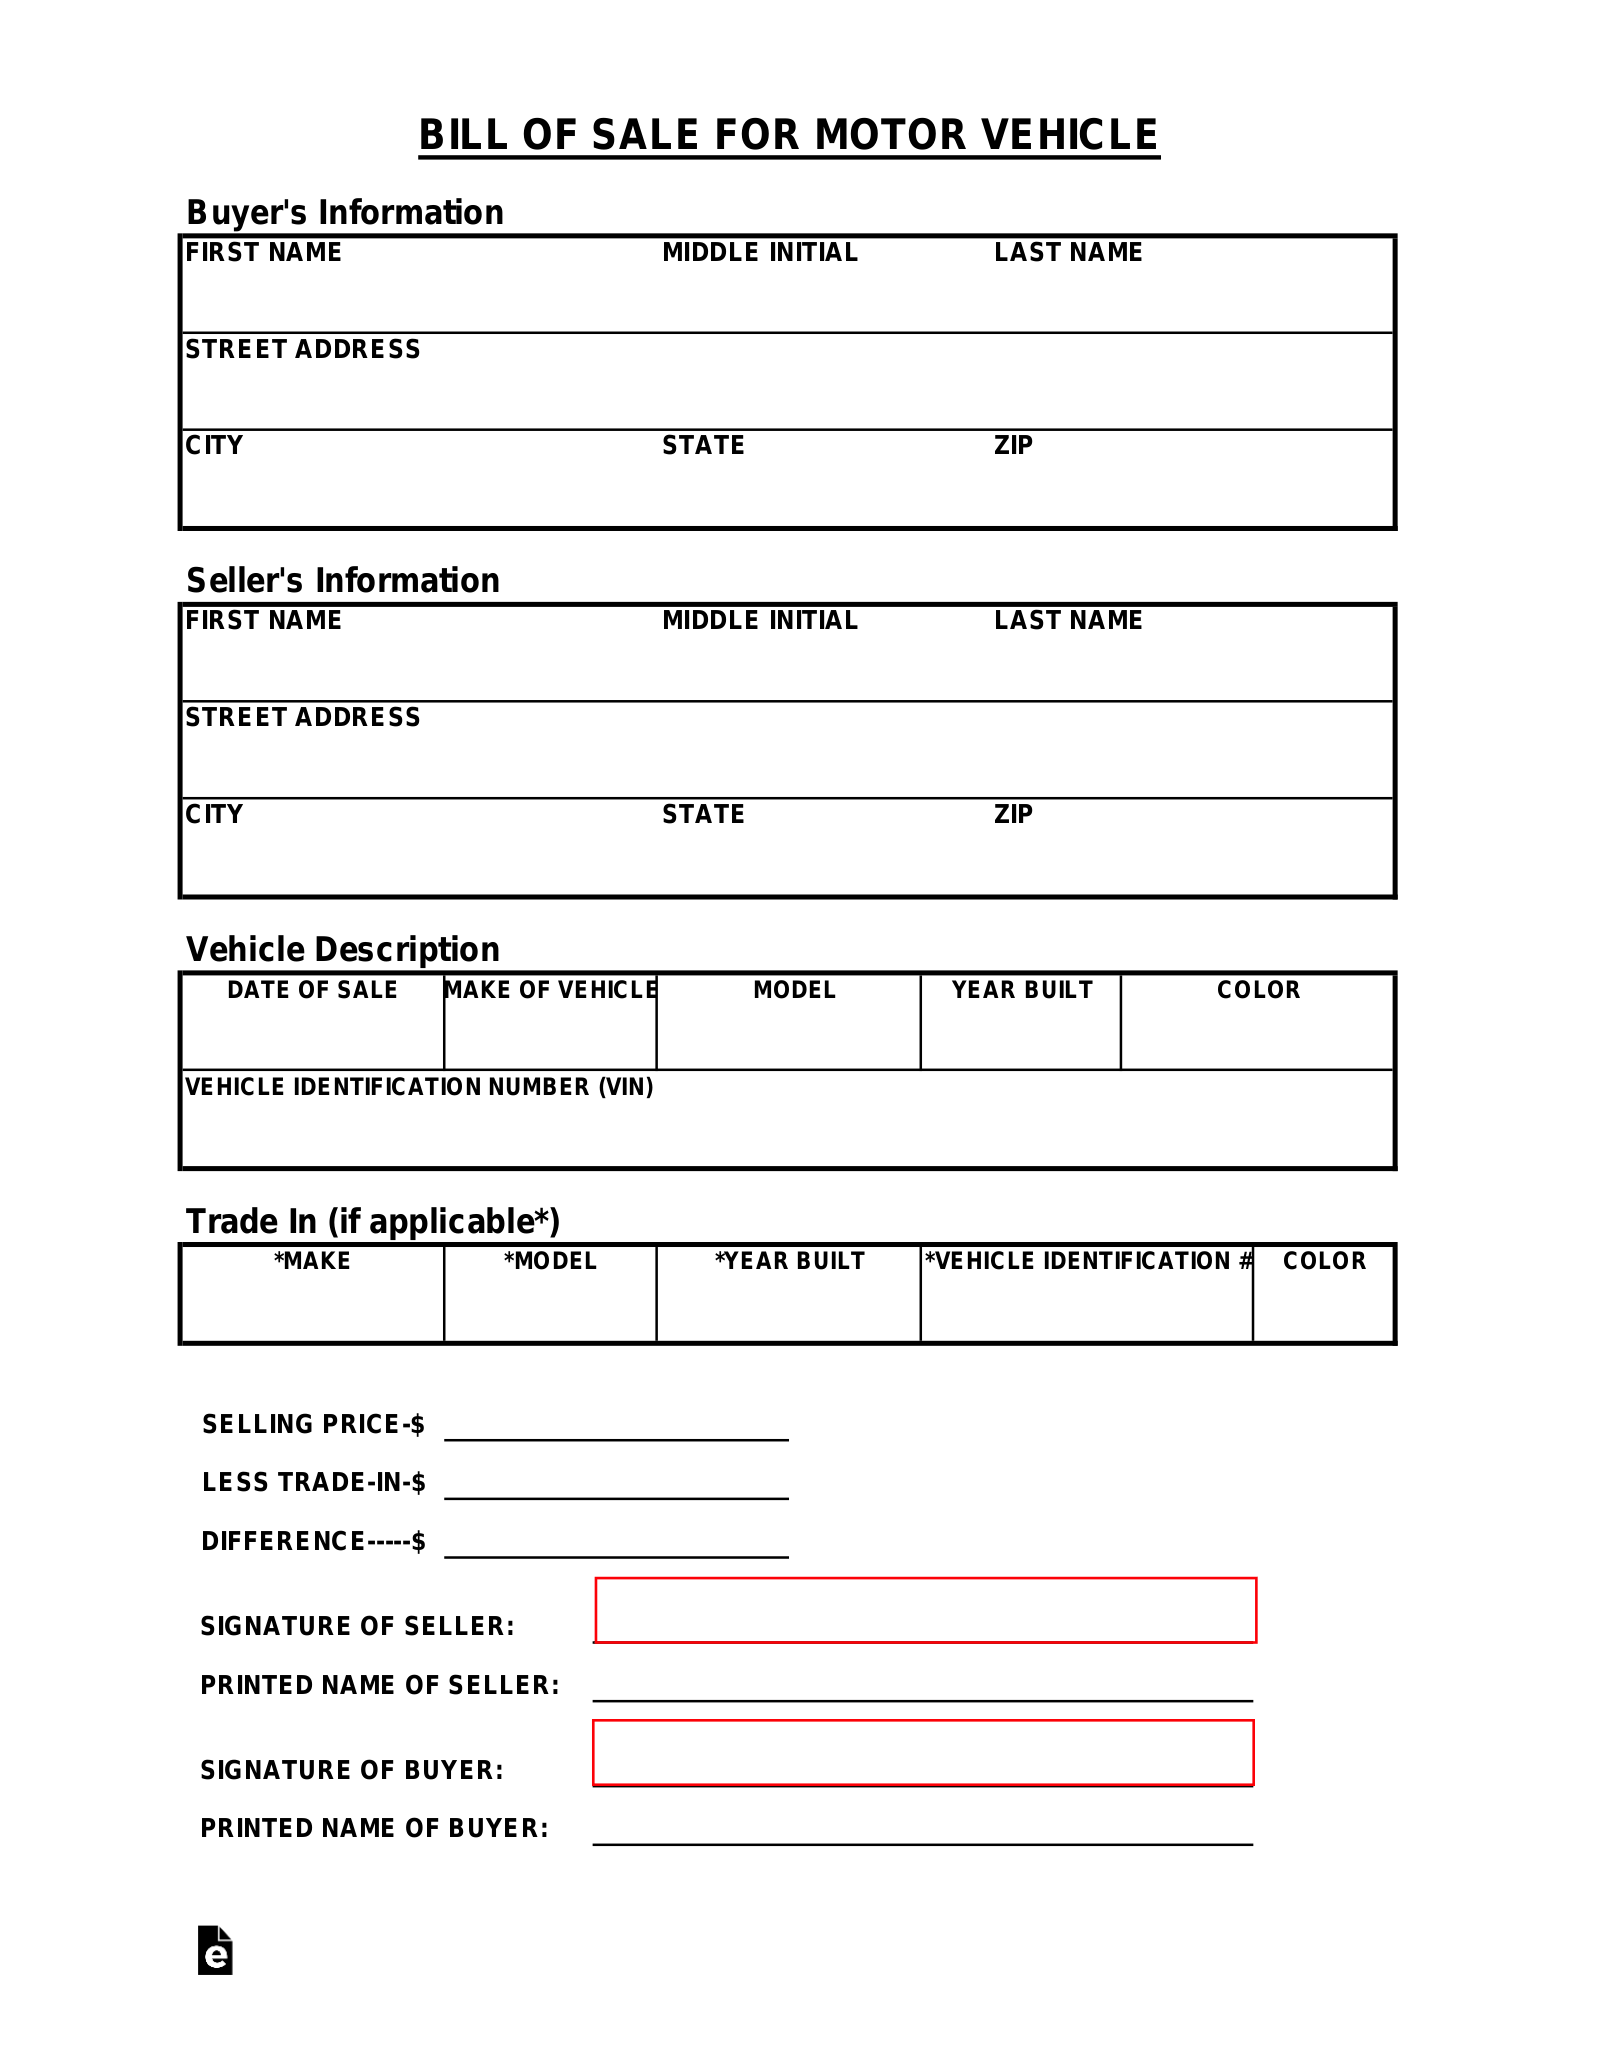 Free Tennessee Motor Vehicle Bill Of Sale Form